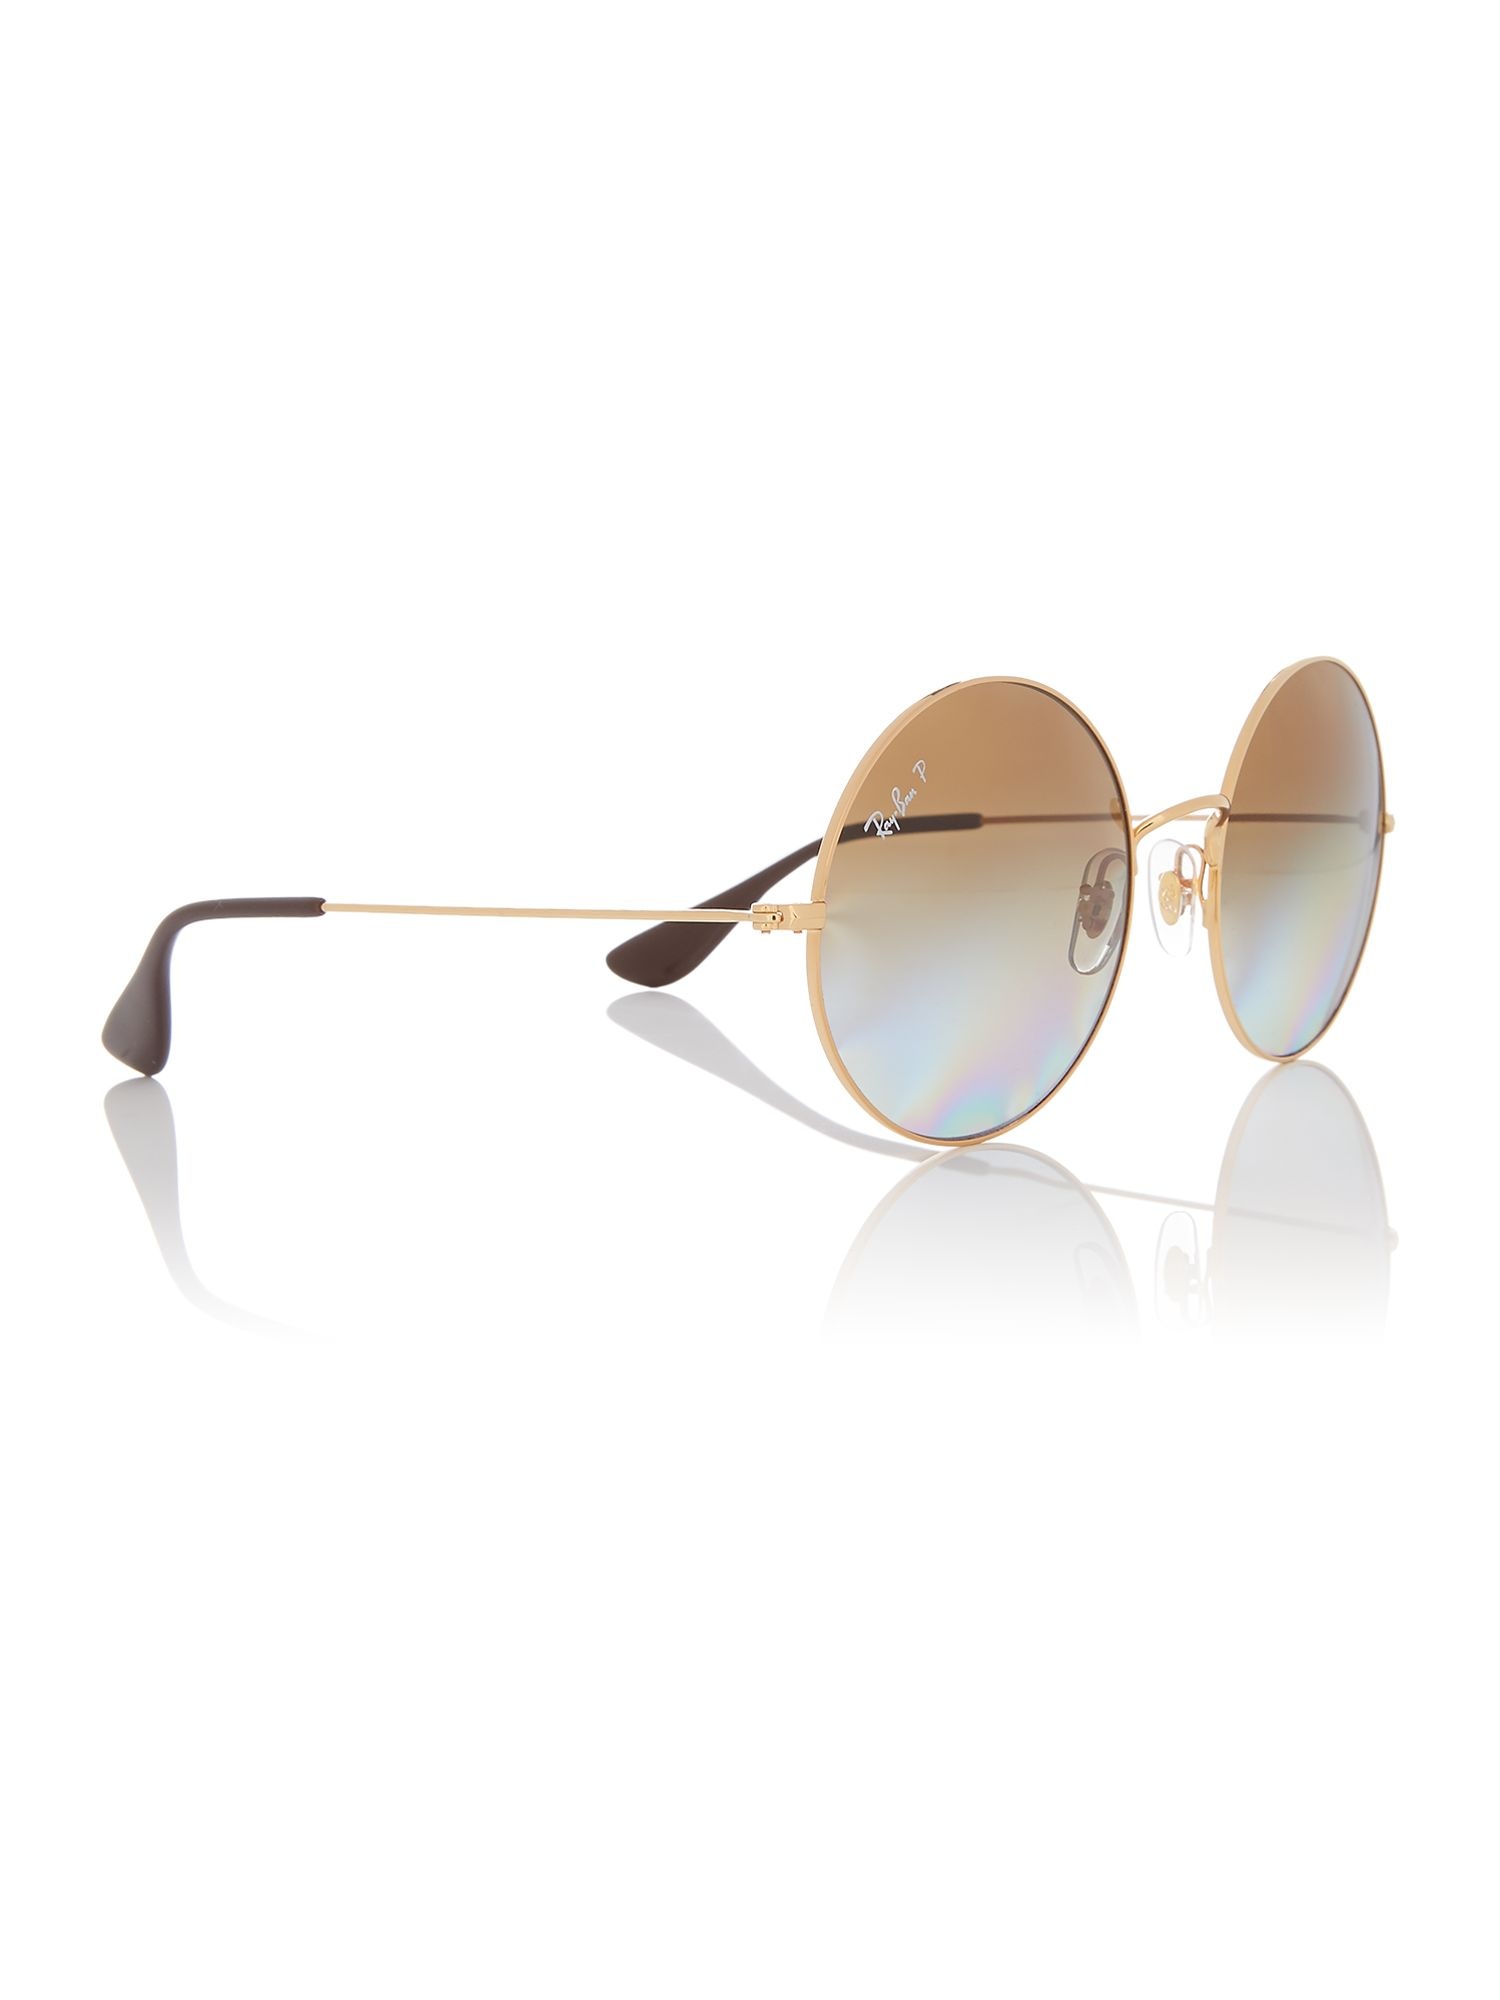 Ray-Ban Gold 0RB3592 Round Sunglasses, Gold